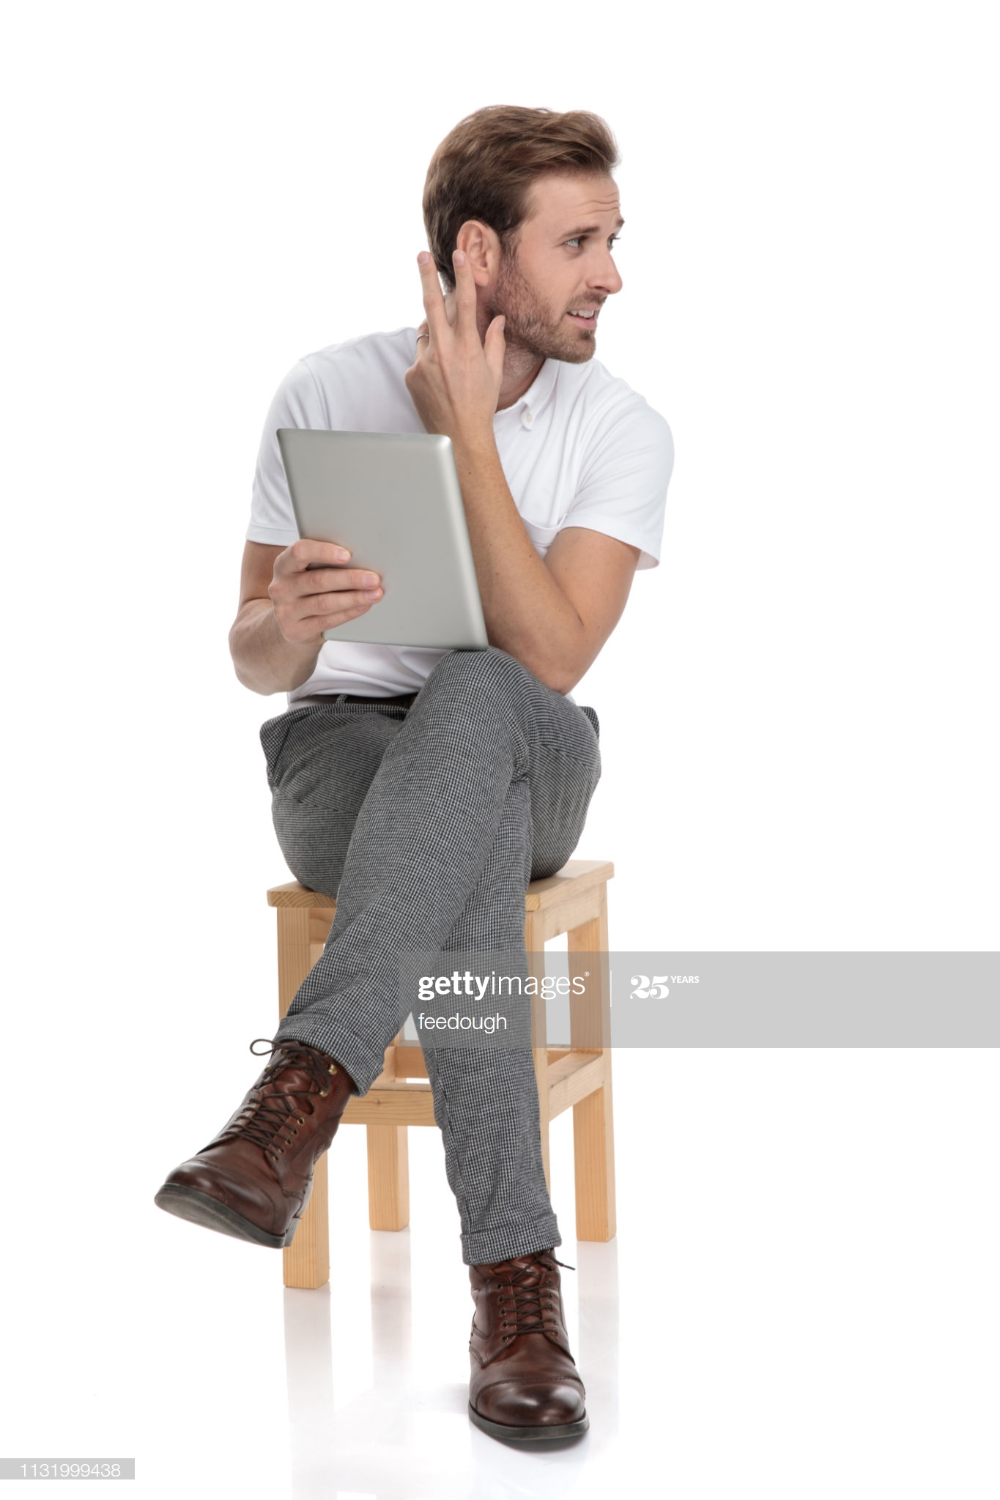 Confused And Curious Man Sitting On Chair Holds A Tablet And Gestures Man Sitting Man Curious